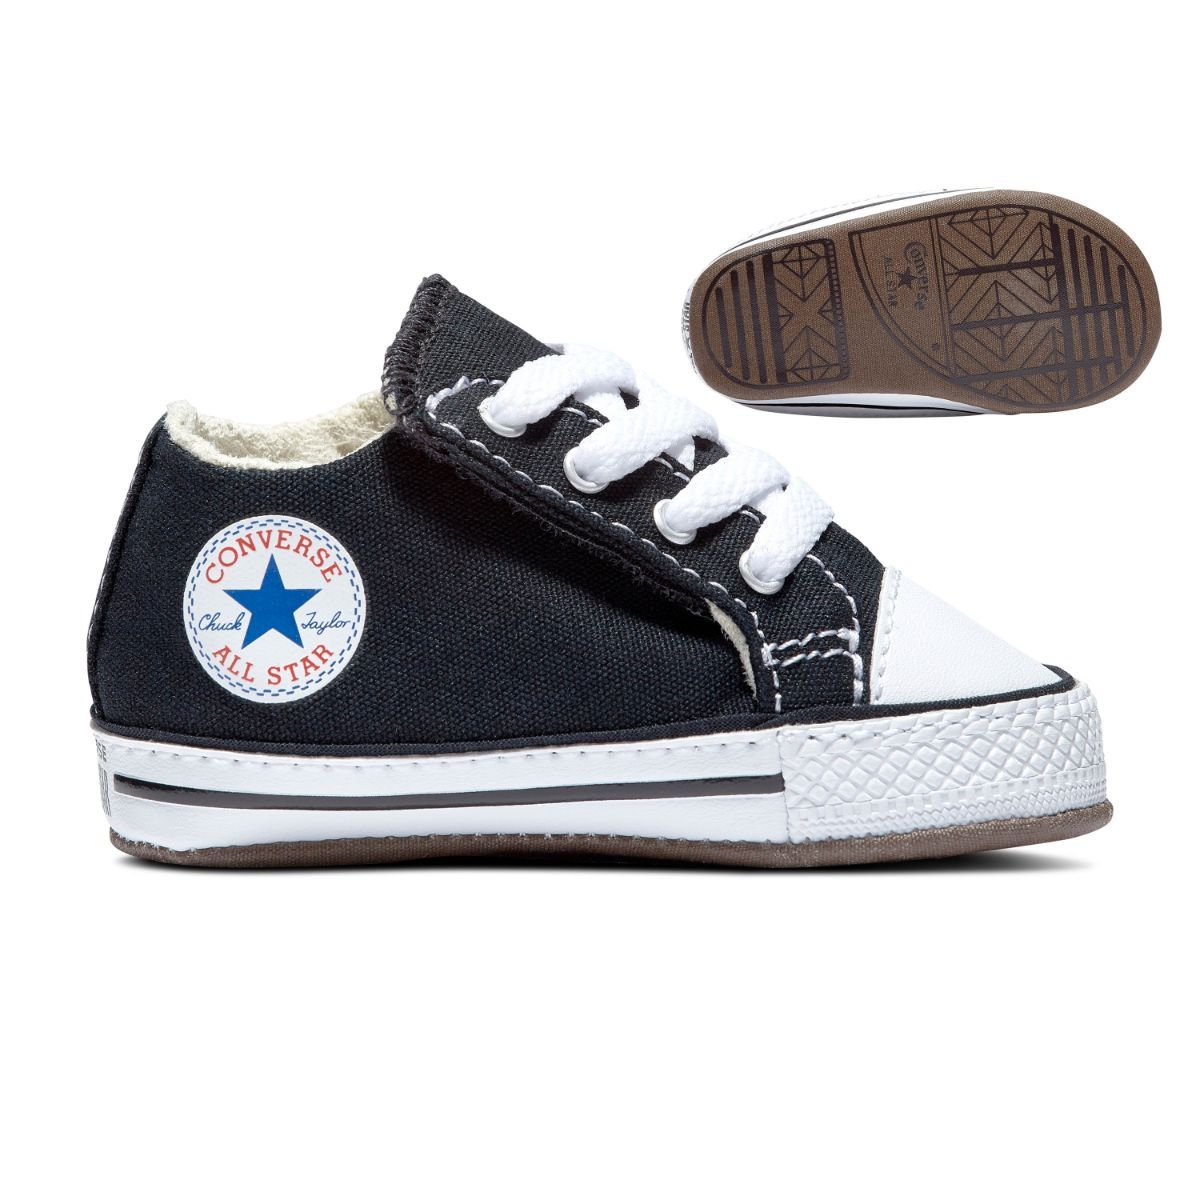 Chuck Taylor All Star Black Cribster